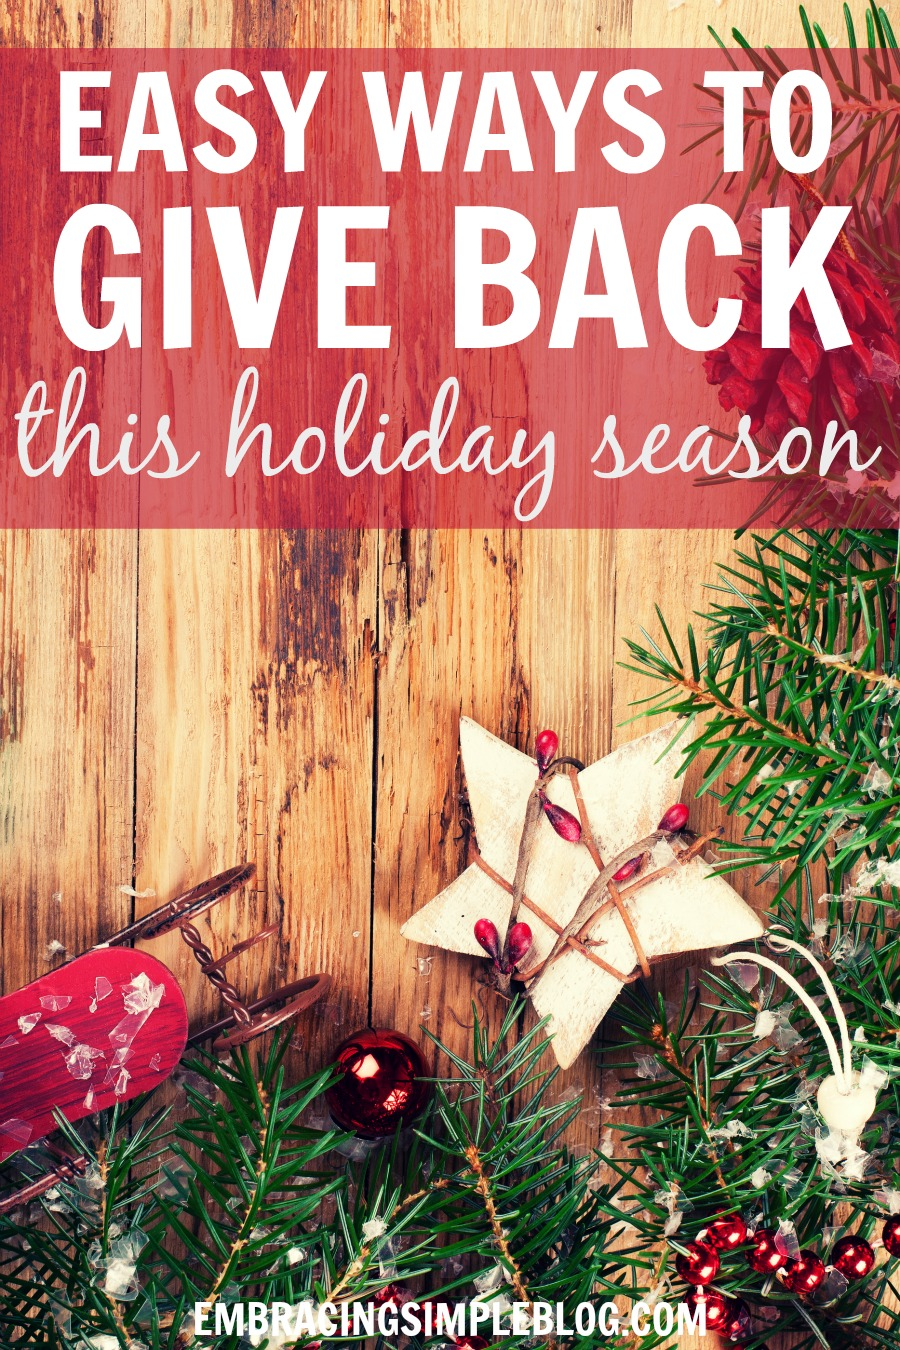 Giving to others who are in need is such a beautiful way to find joy during the holidays. Here are four super easy ways to give back this holiday season!